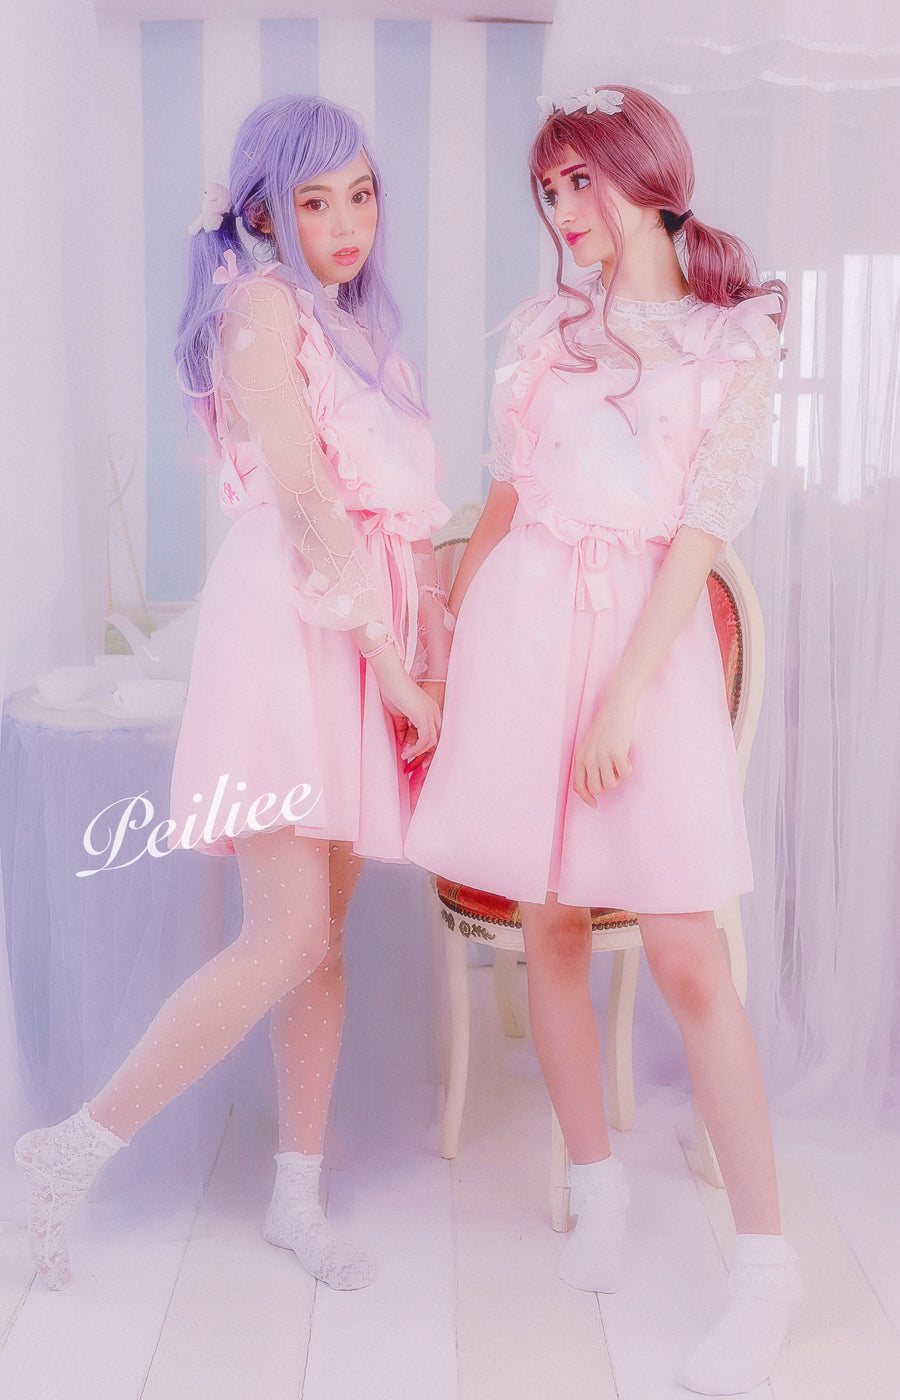 Peiliee 2 Years Anniversary The Dreamy Lolita Dress Set - Peiliee Shop